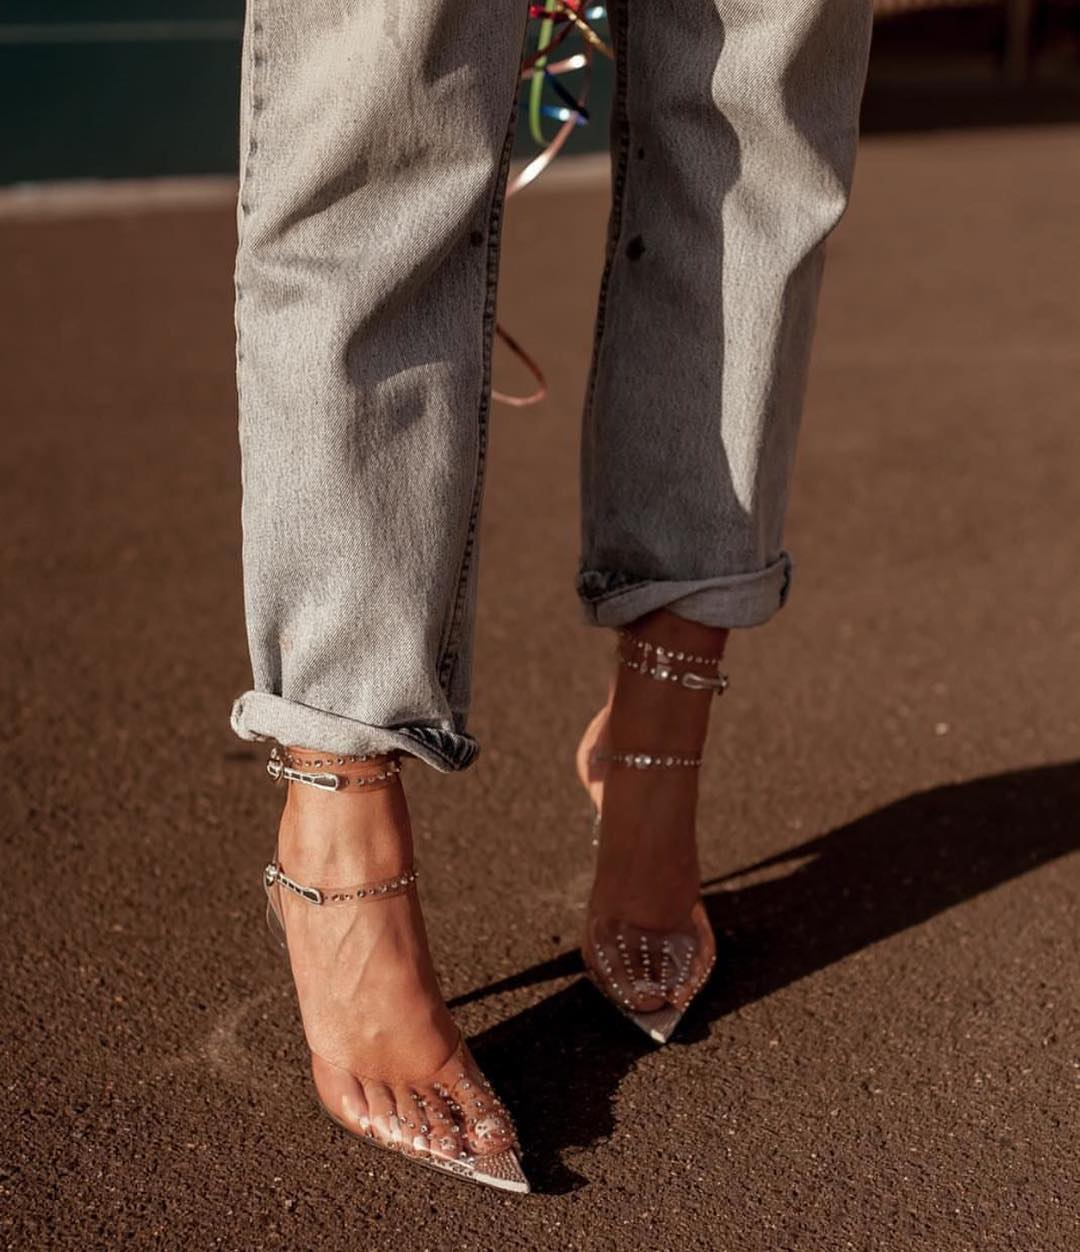 Clear Pointy Toe Heels And Cuffed Boyfriend Jeans For Spring 2020